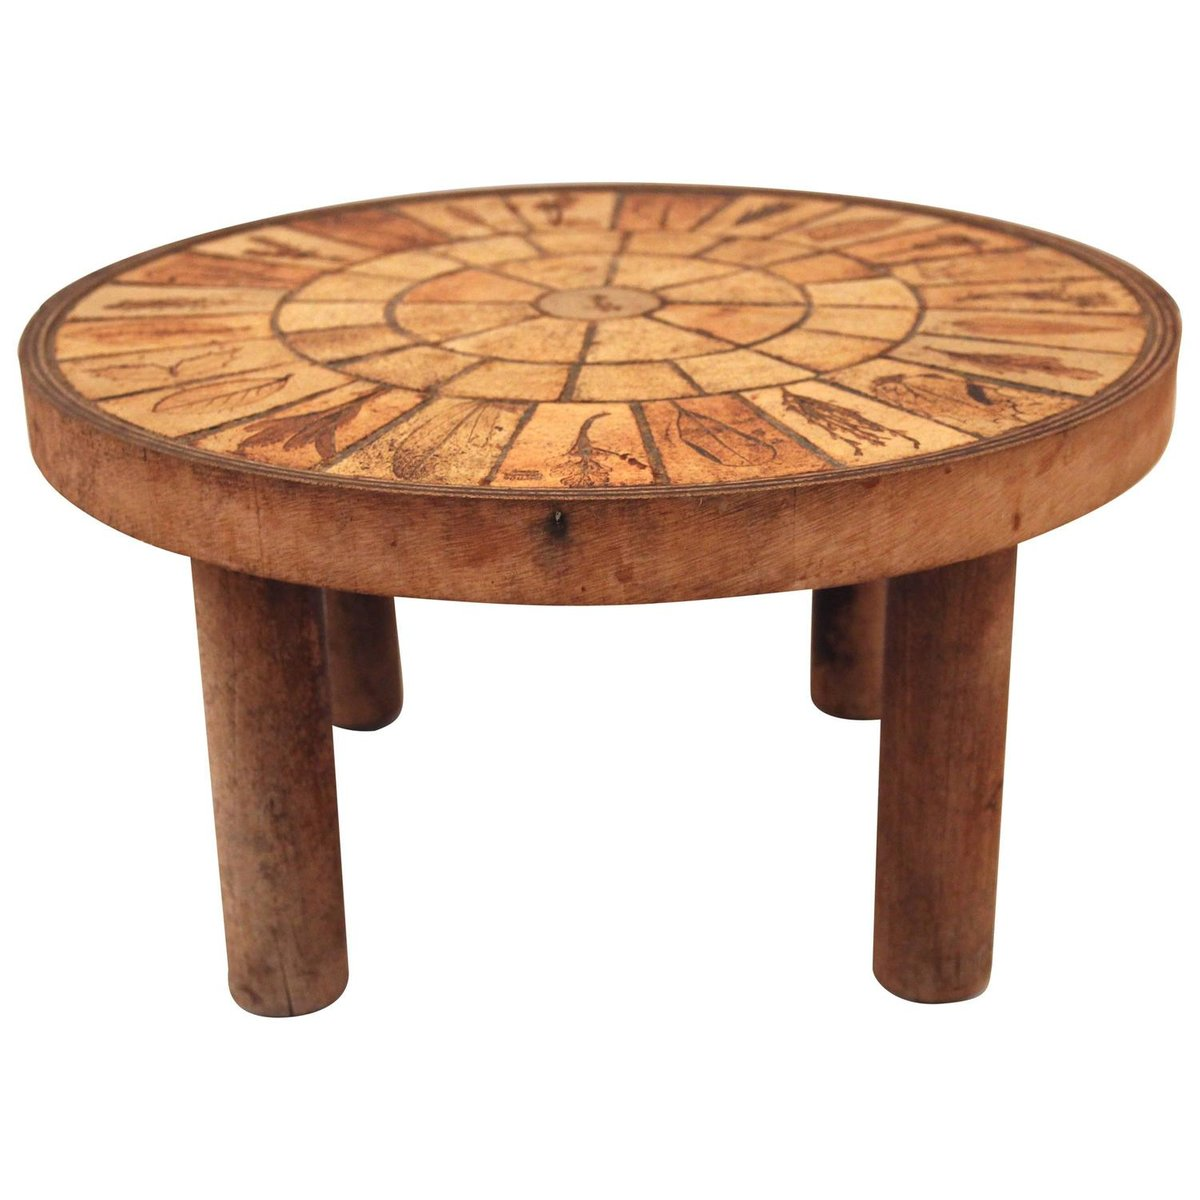 french ceramic wooden coffee table by roger capron. Black Bedroom Furniture Sets. Home Design Ideas